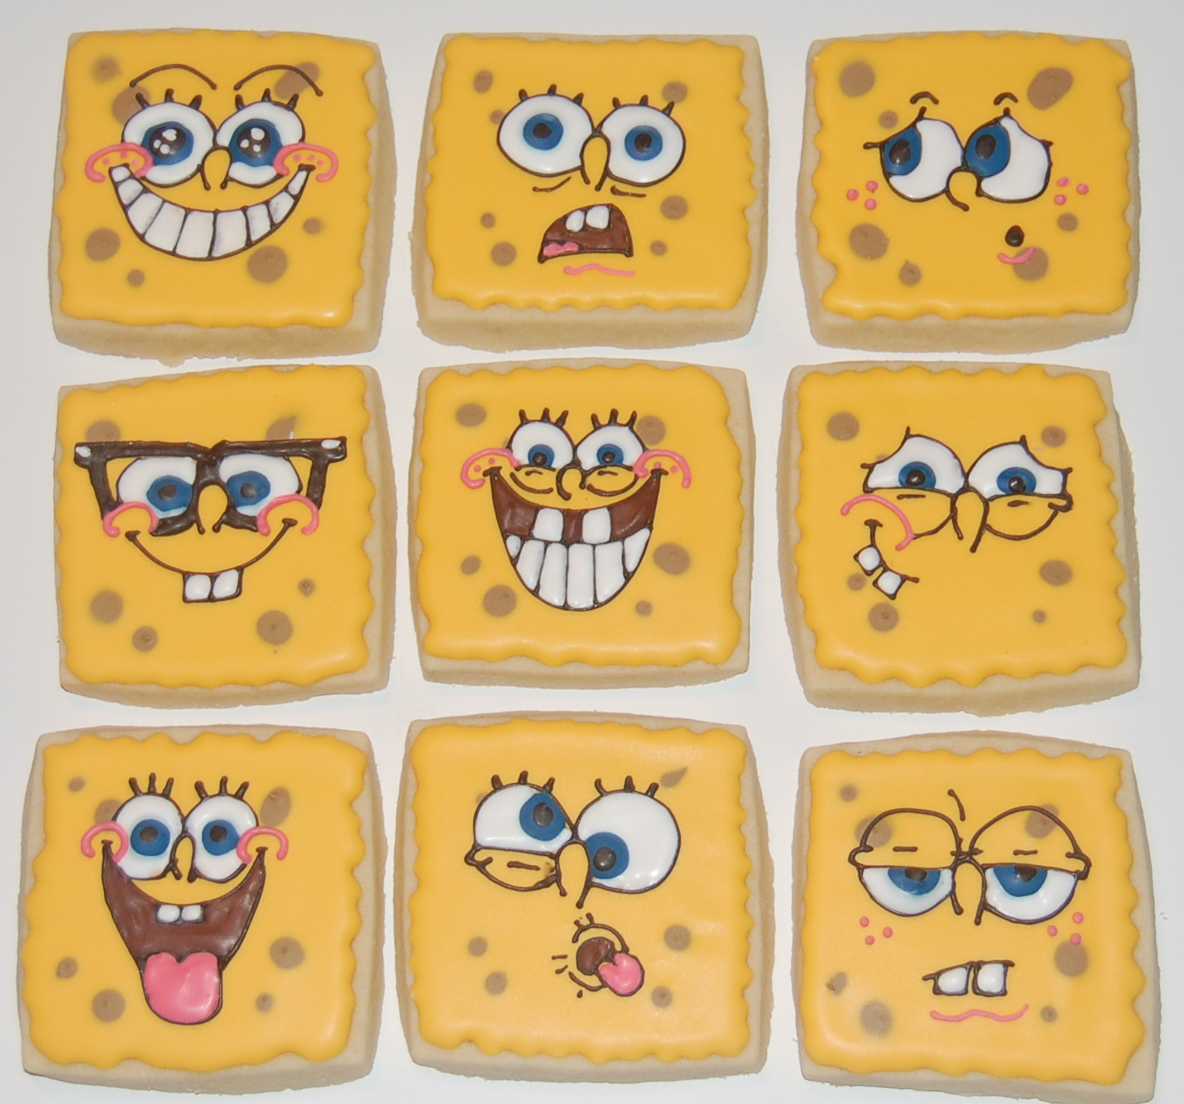 Spongebob Squarepants Sugar Cookies